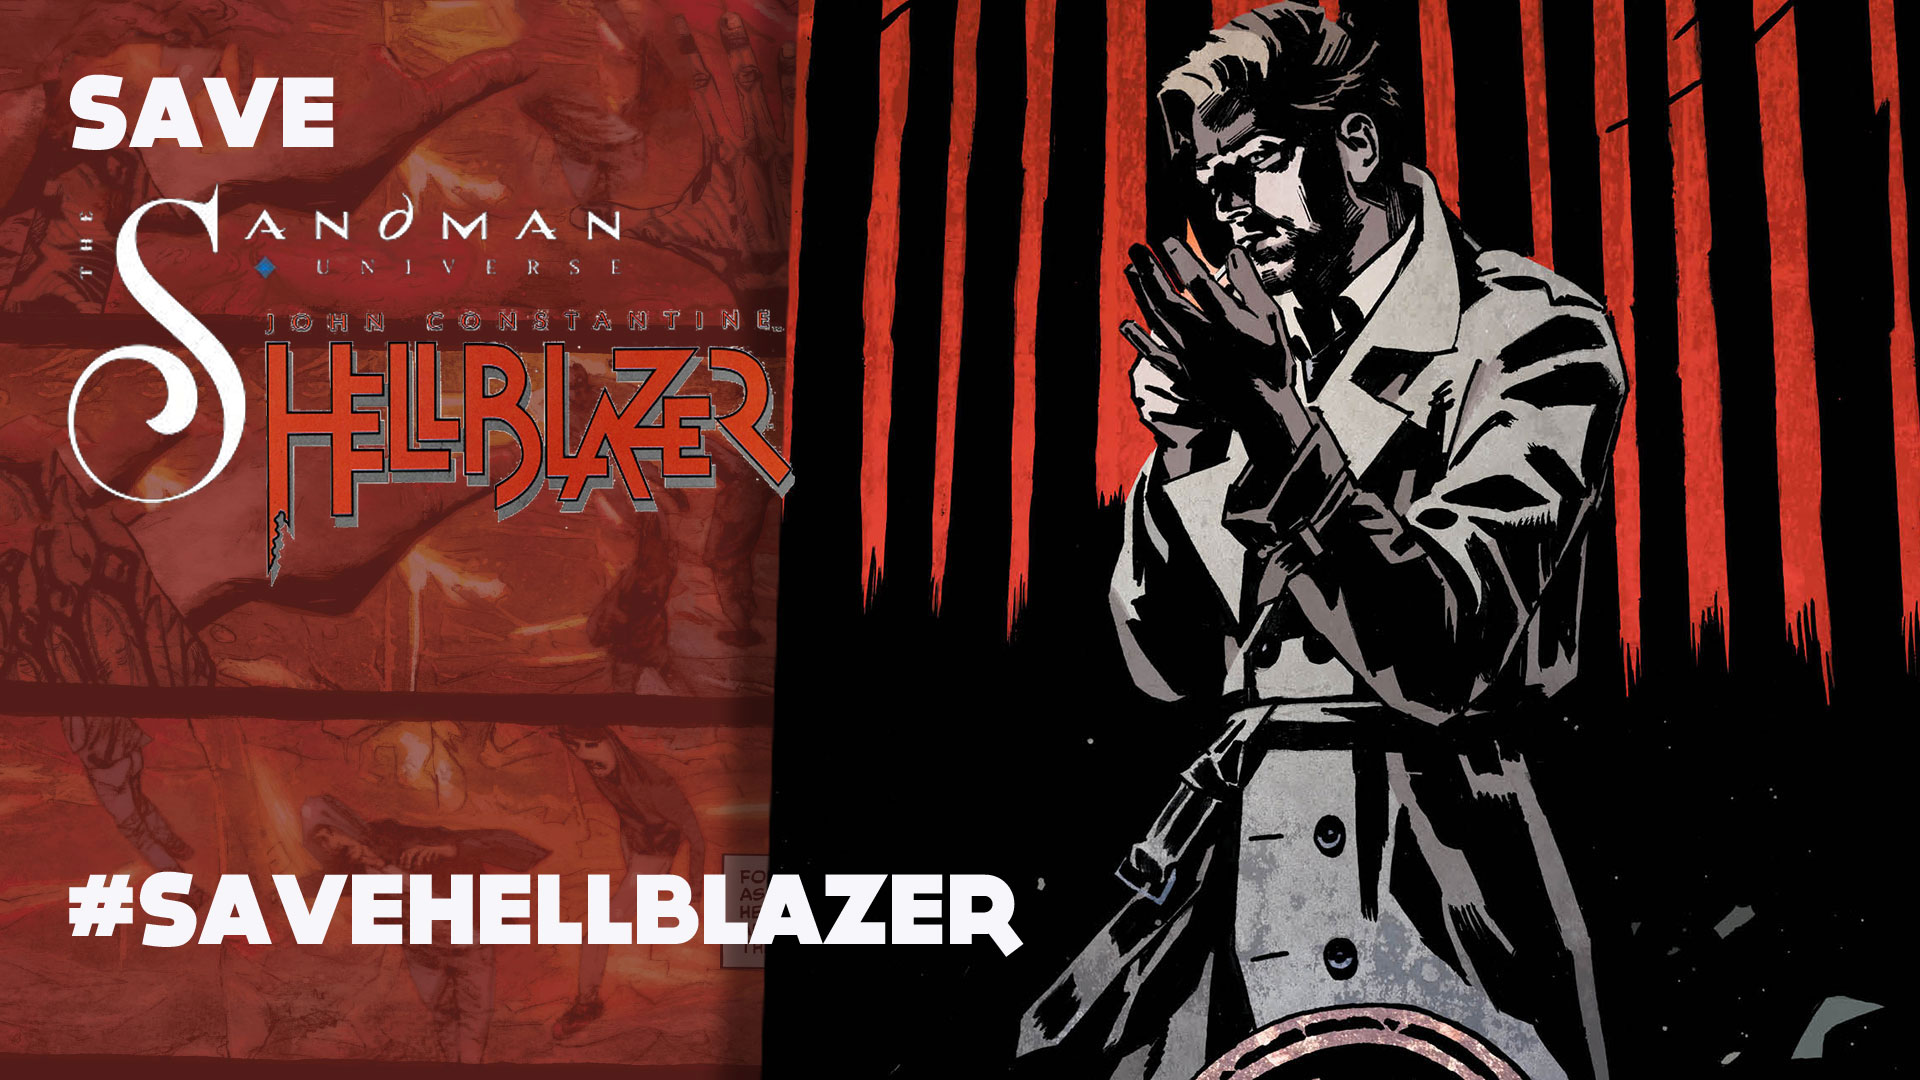 savehellblazer